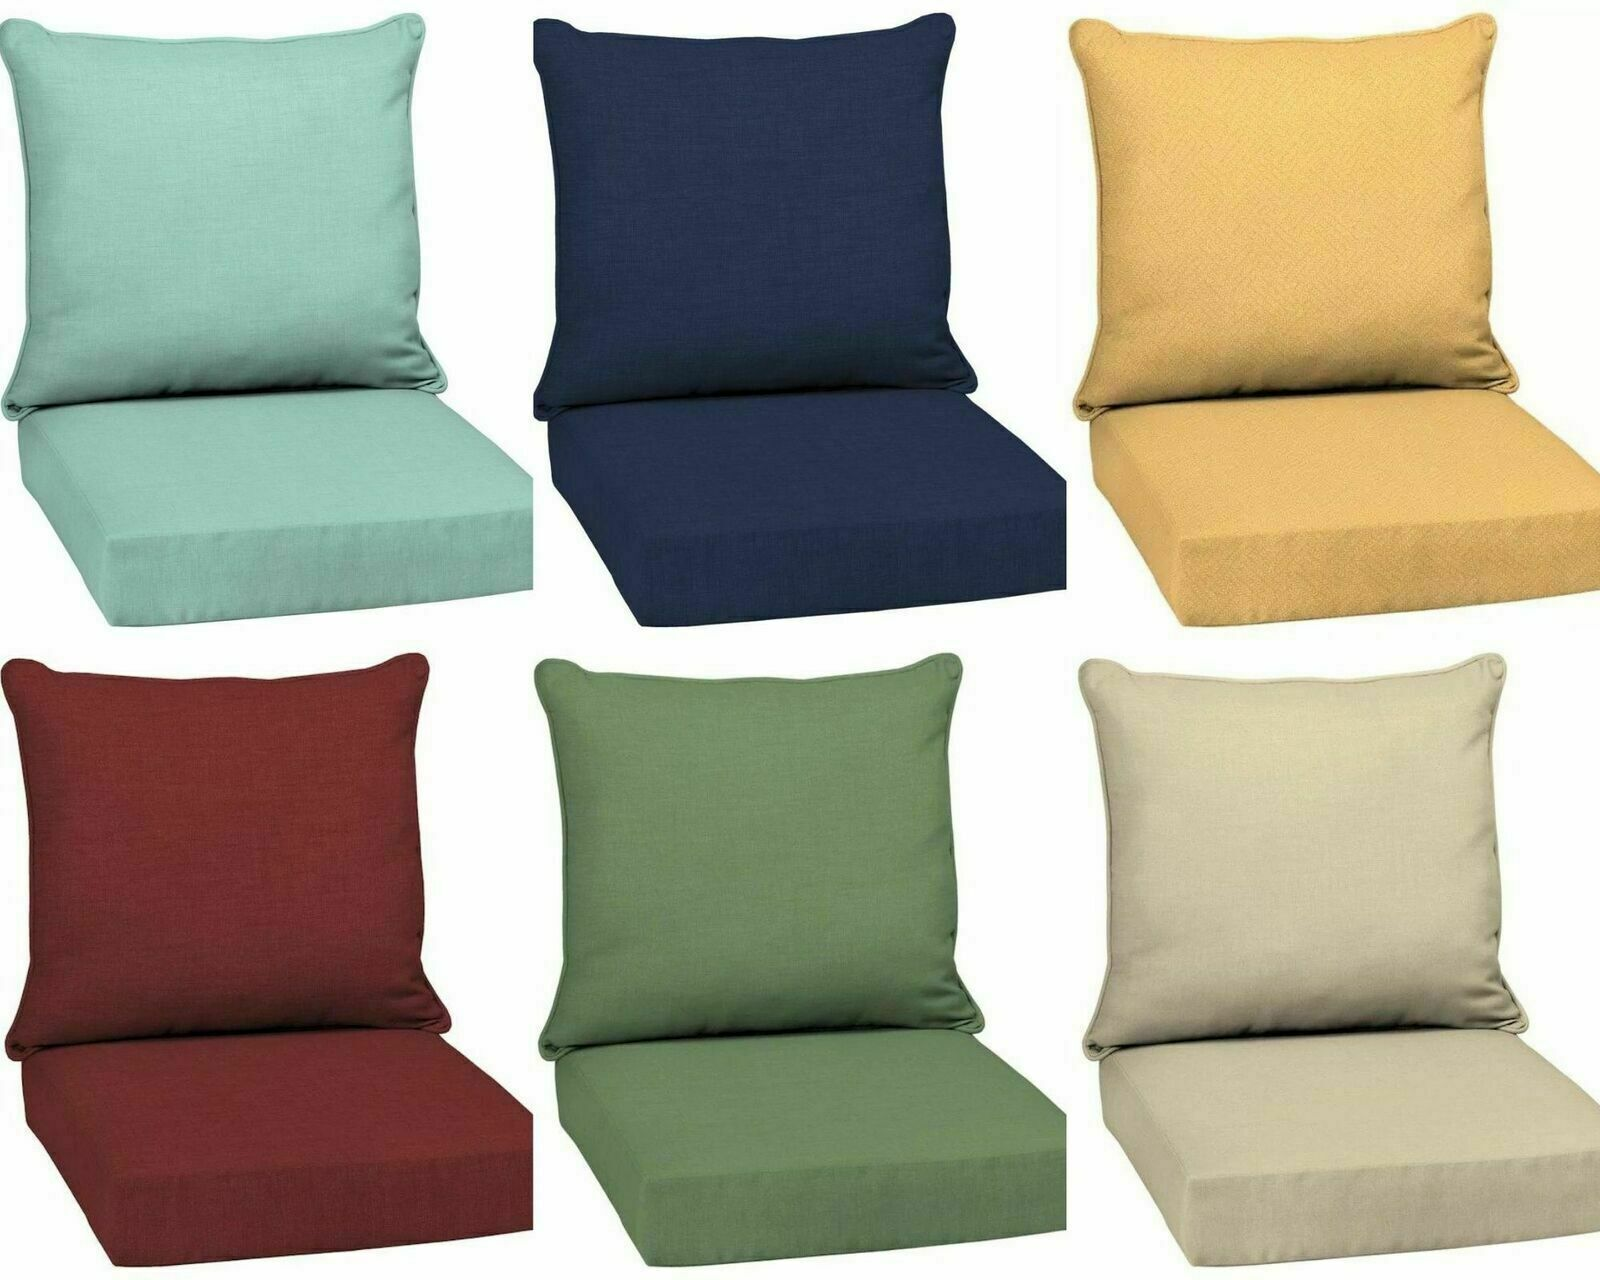 Coral Coast Outdoor Furniture Seat Pad For Sale Online Ebay